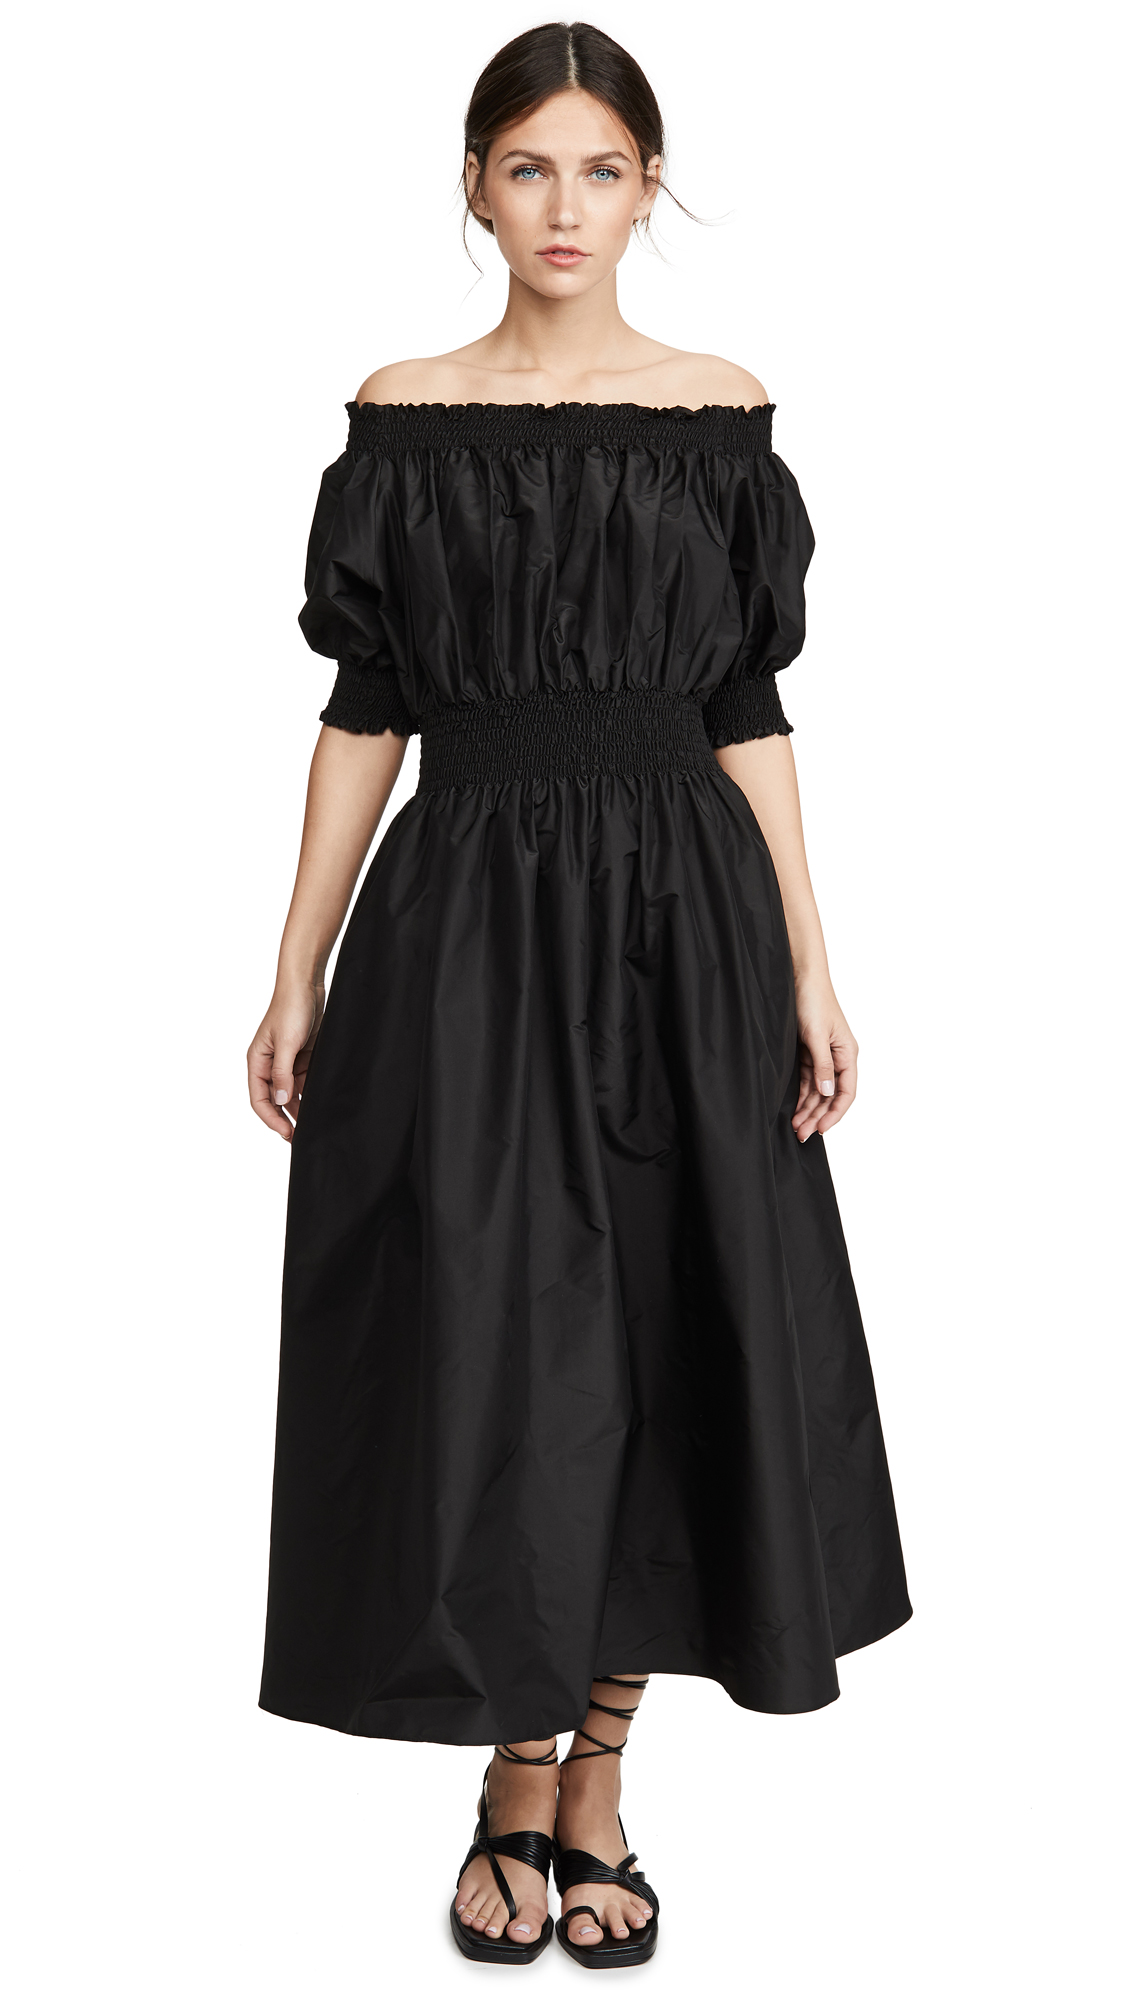 Buy Adam Lippes Taffeta Smocked Dress online beautiful Adam Lippes Dresses, Strapless